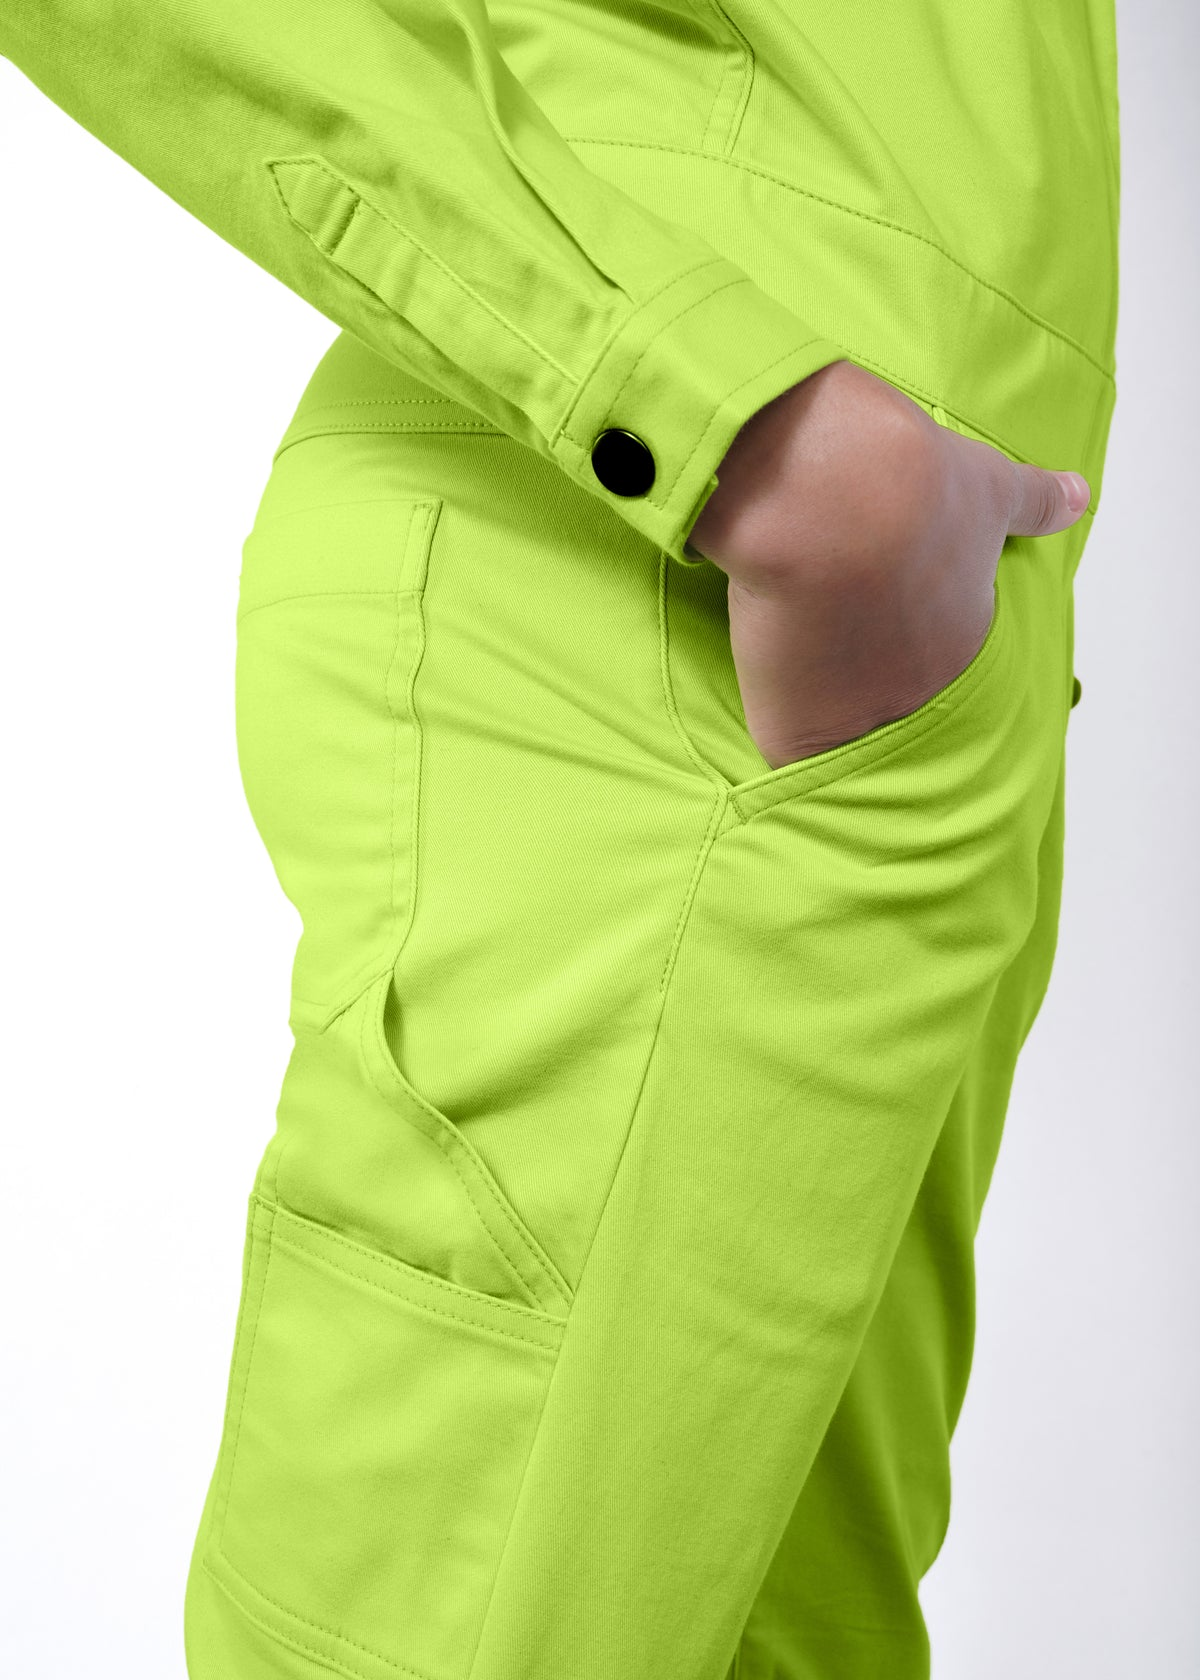 Model wearing neon green long sleeved essential coverall jumpsuit in size small, hand in pocket showing side leg pocket and butt pocket